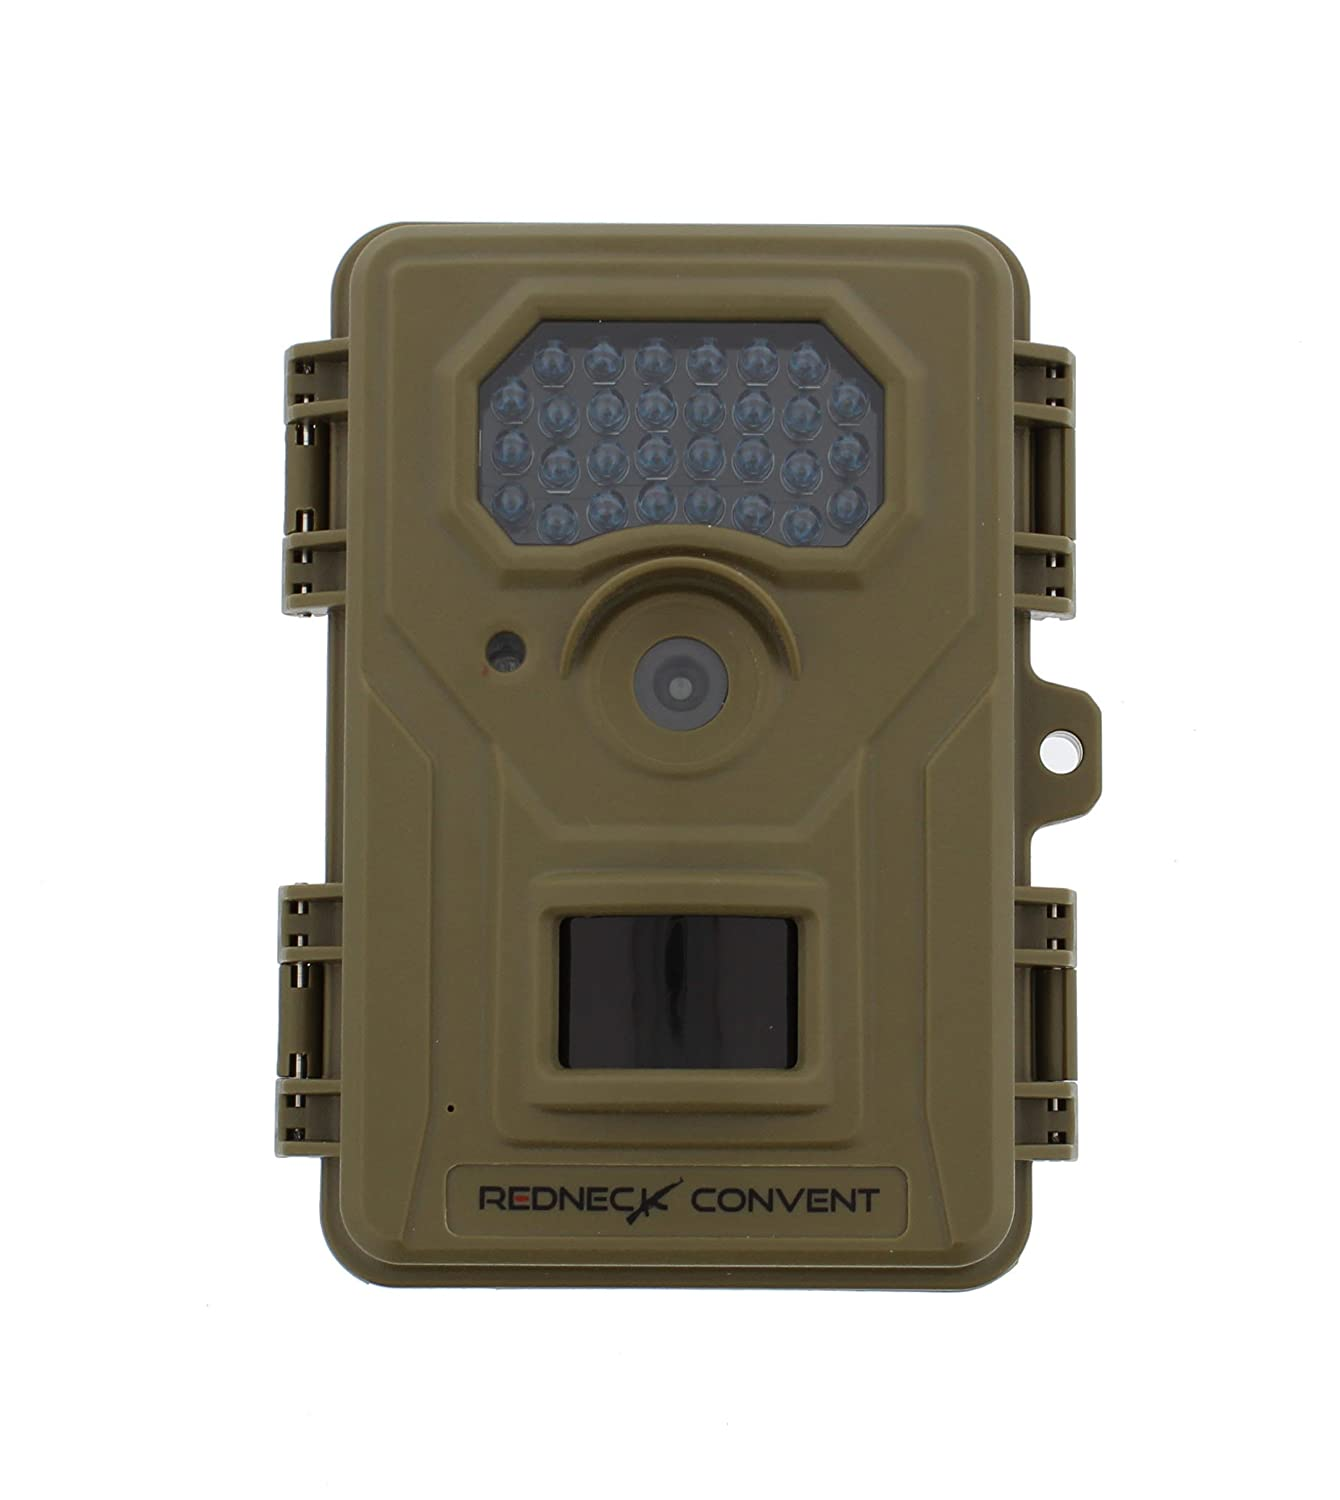 Redneck Convent - Waterproof Trail Camera with Night Vision No Glow Hunting  Camera 12MP 1080p